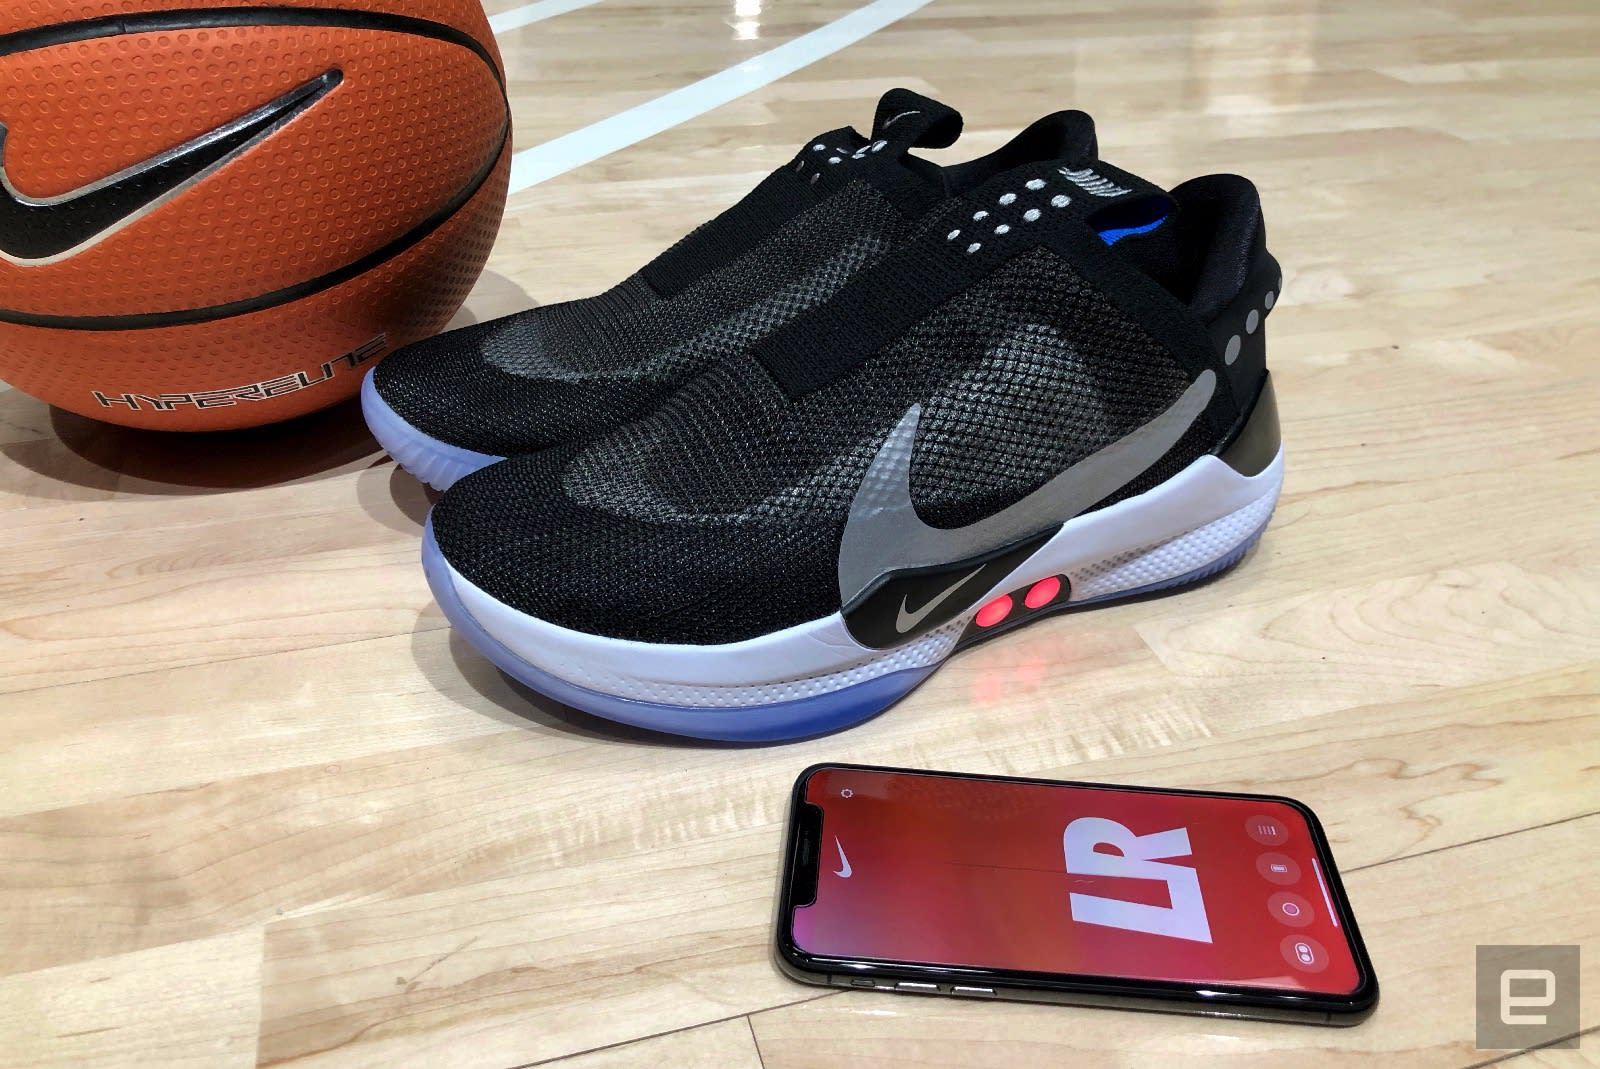 0fecf26f1 A closer look at Nike s Adapt BB auto-lacing basketball shoes